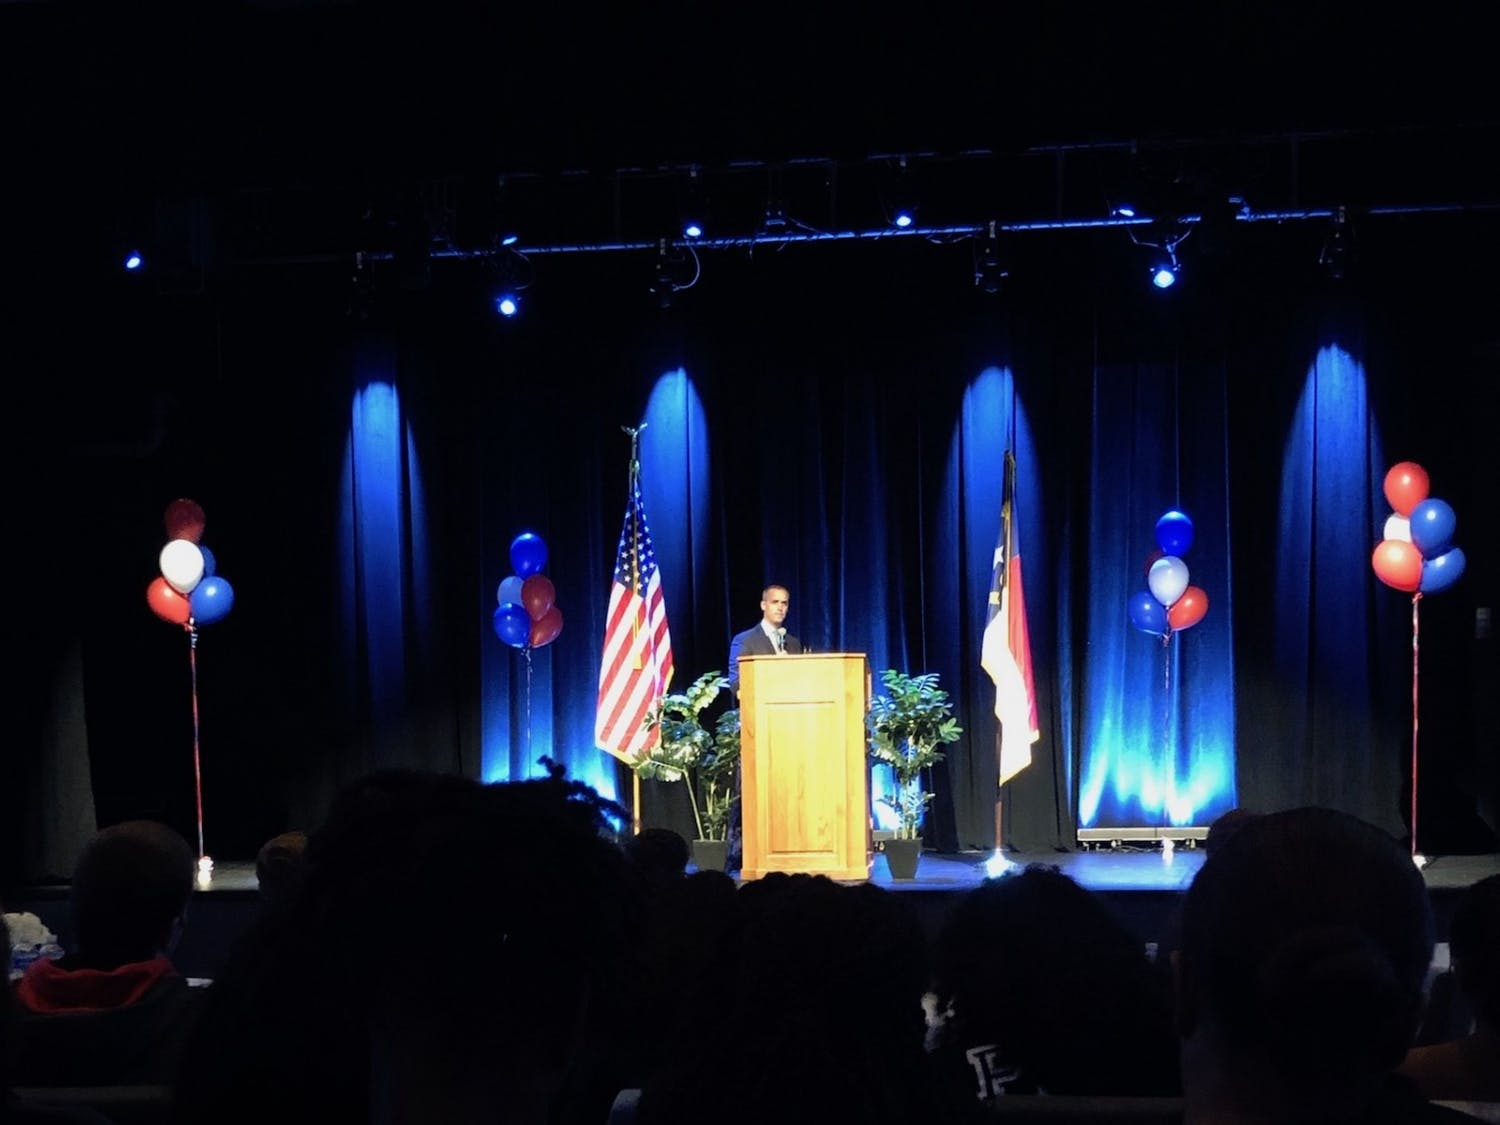 Corey Lewandowski, President Donald Trump's former campaign manager, came to campus to talk on Wednesday, Nov. 20, 2019.